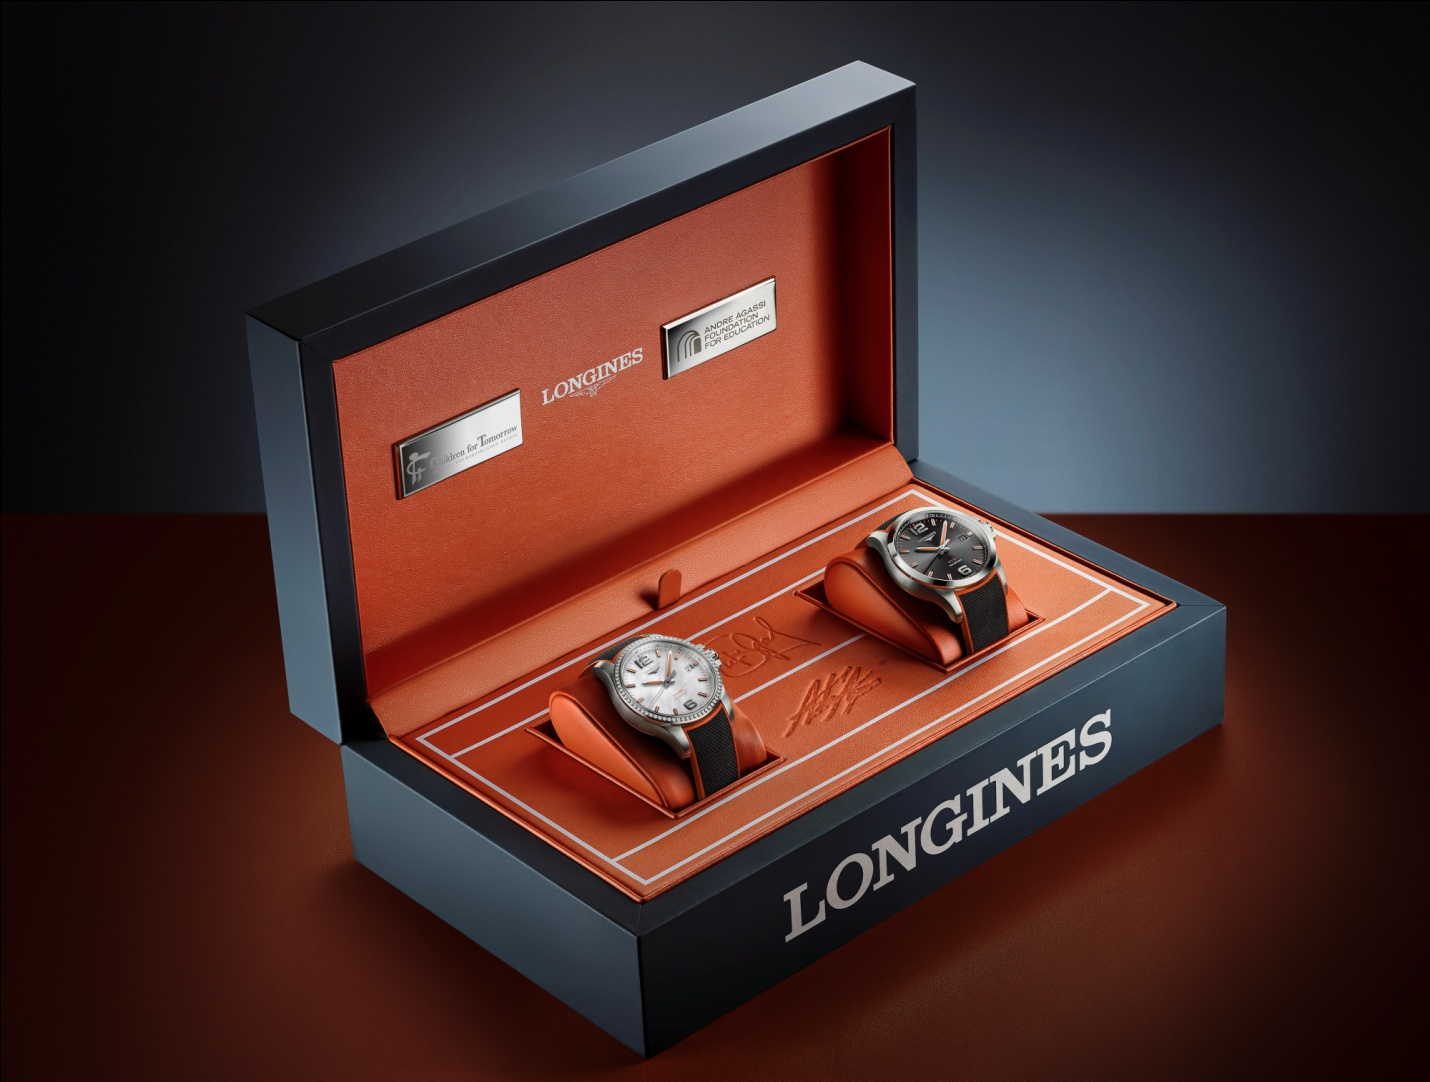 đồng hồ mới Longines Conquest V.H.P. Stefanie Graf & Andre Agassi Foundations